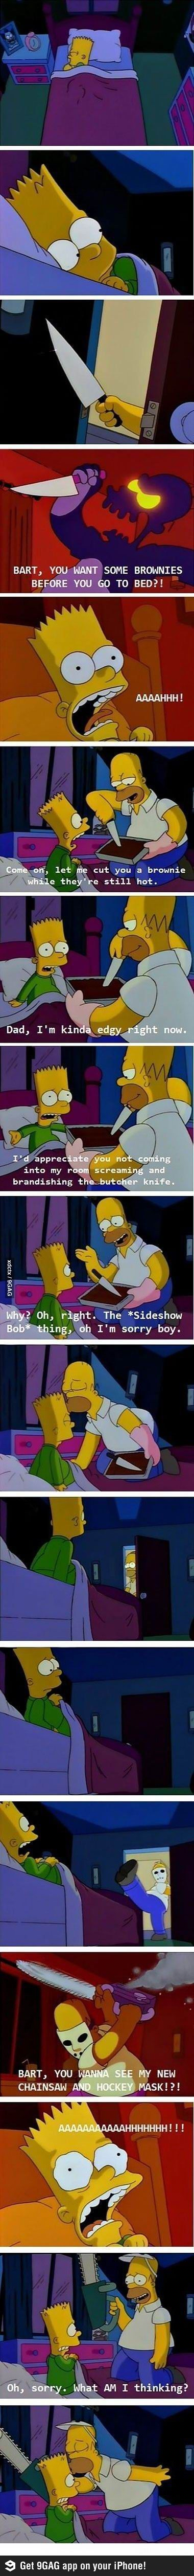 Hahaha! This is hilarious! Poor Bart.